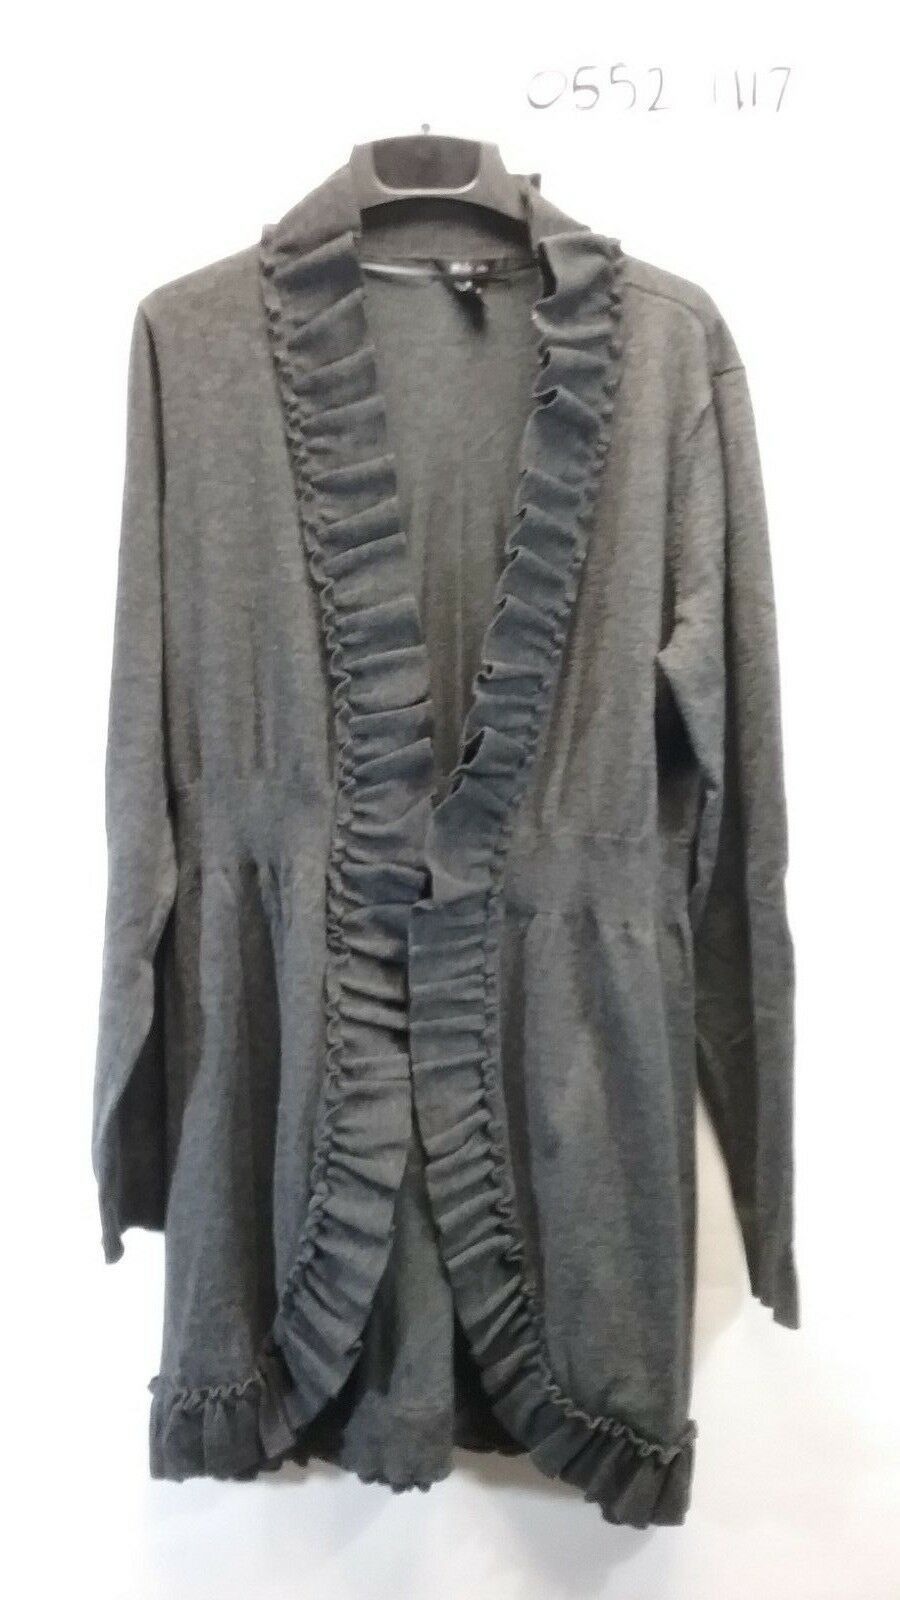 Primary image for Style & Company Women's Long Cardigan Sweater - Size Medium